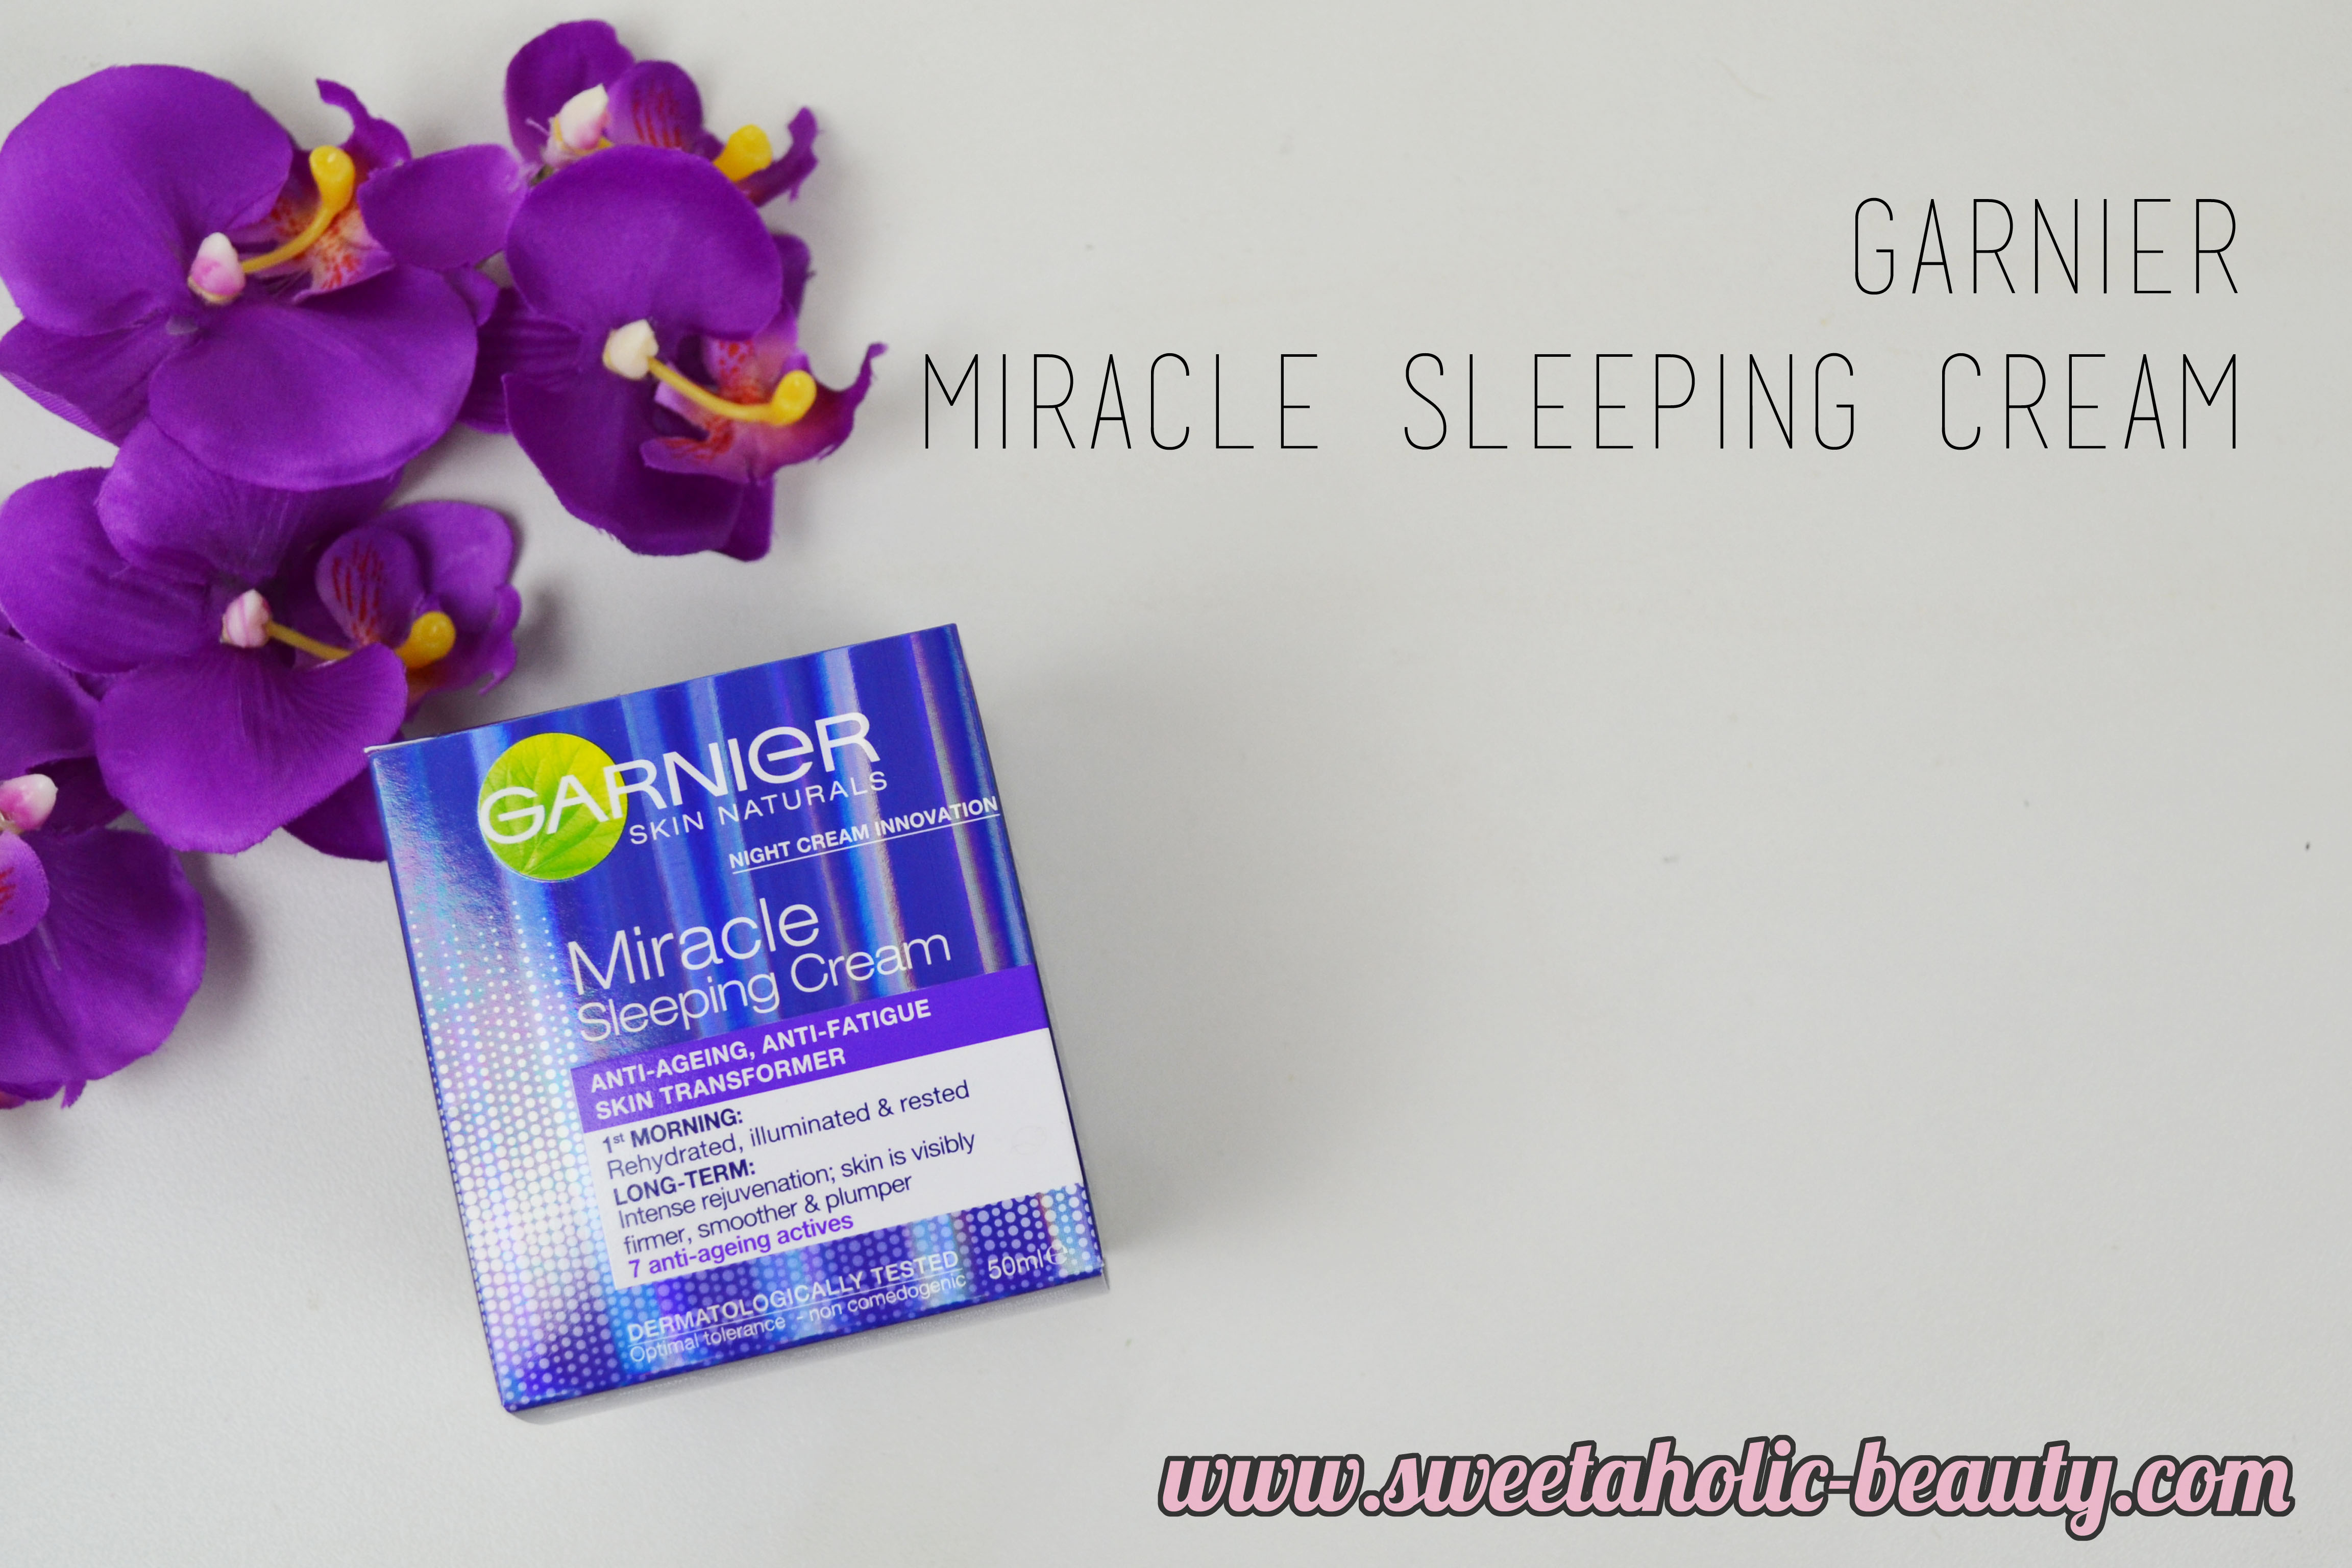 Garnier Miracle Sleeping Cream Review - Sweetaholic Beauty